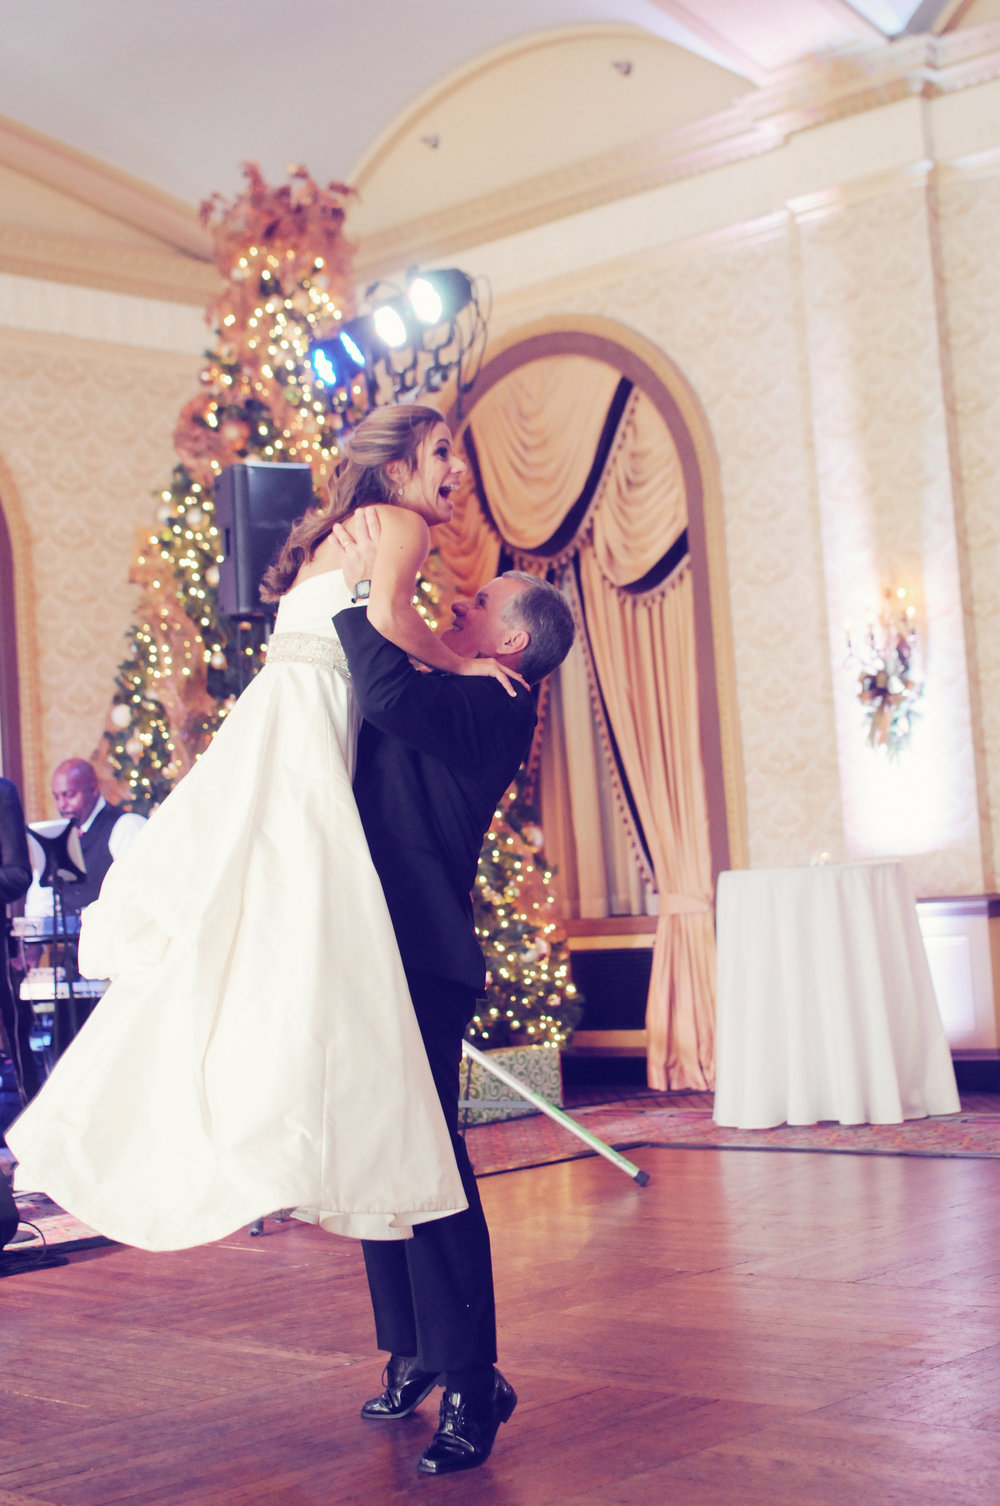 Father-Daughter Dance, Gold Ballroom, Westin Poinsett, Greenville, SC - Alea Moore Photography - lifewthstyle.co